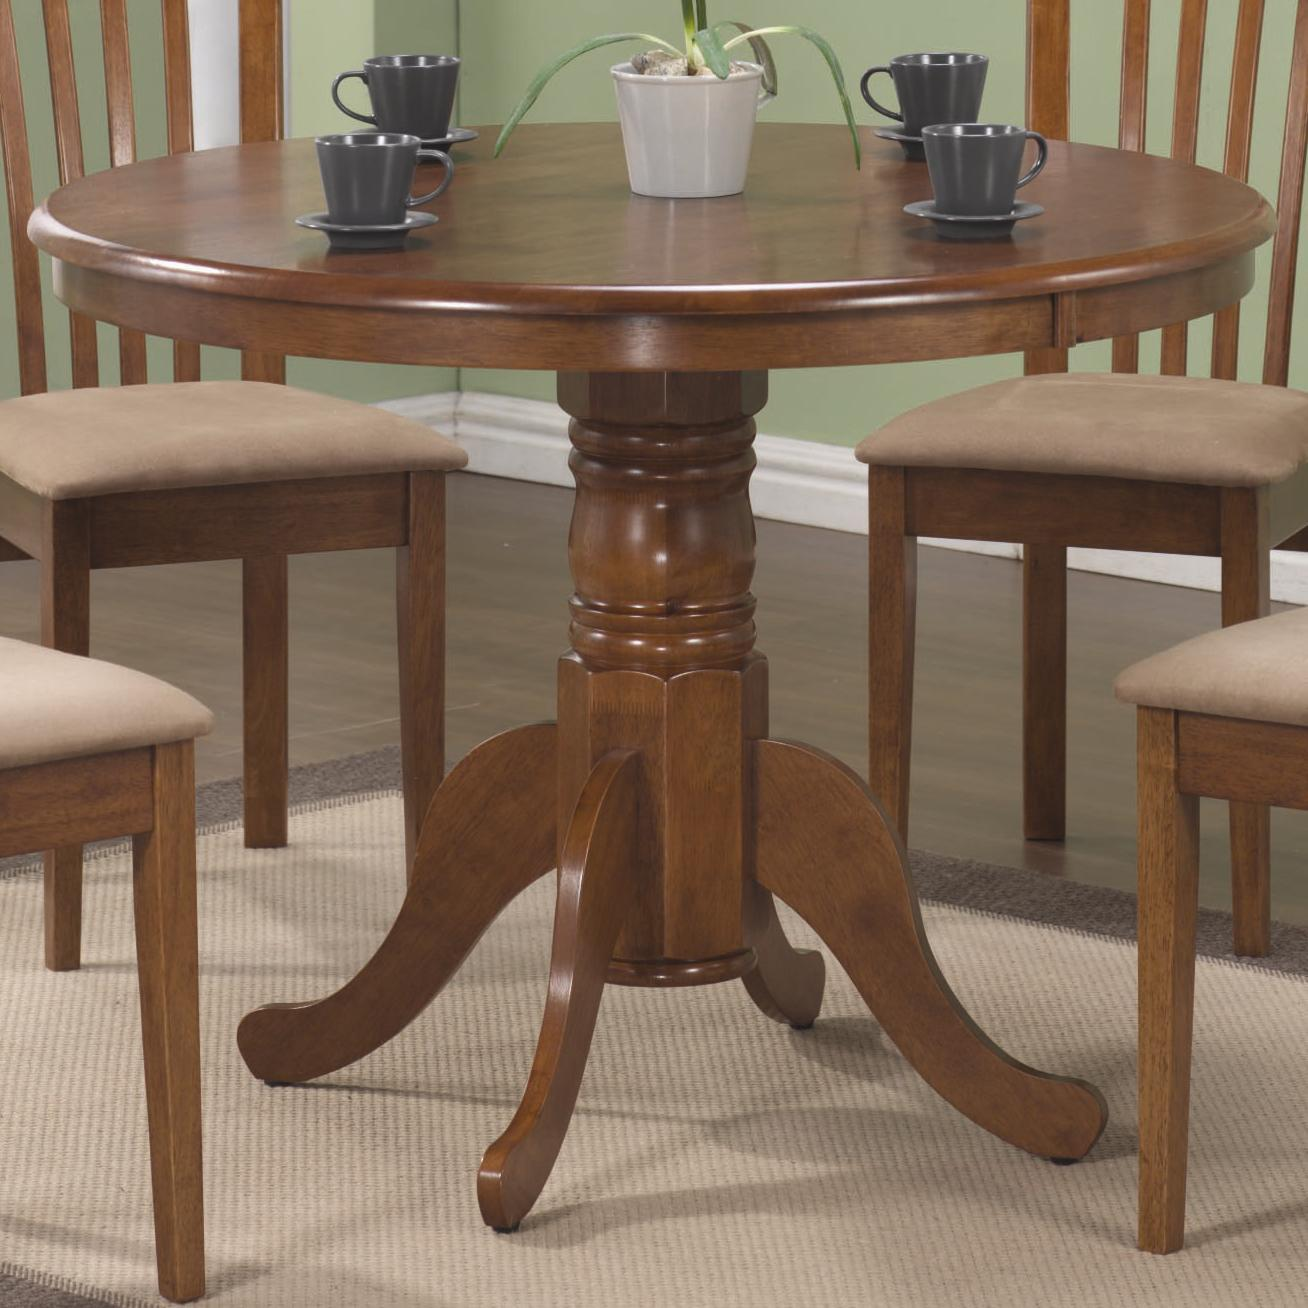 Brannan Round Dining Table by Coaster at Standard Furniture